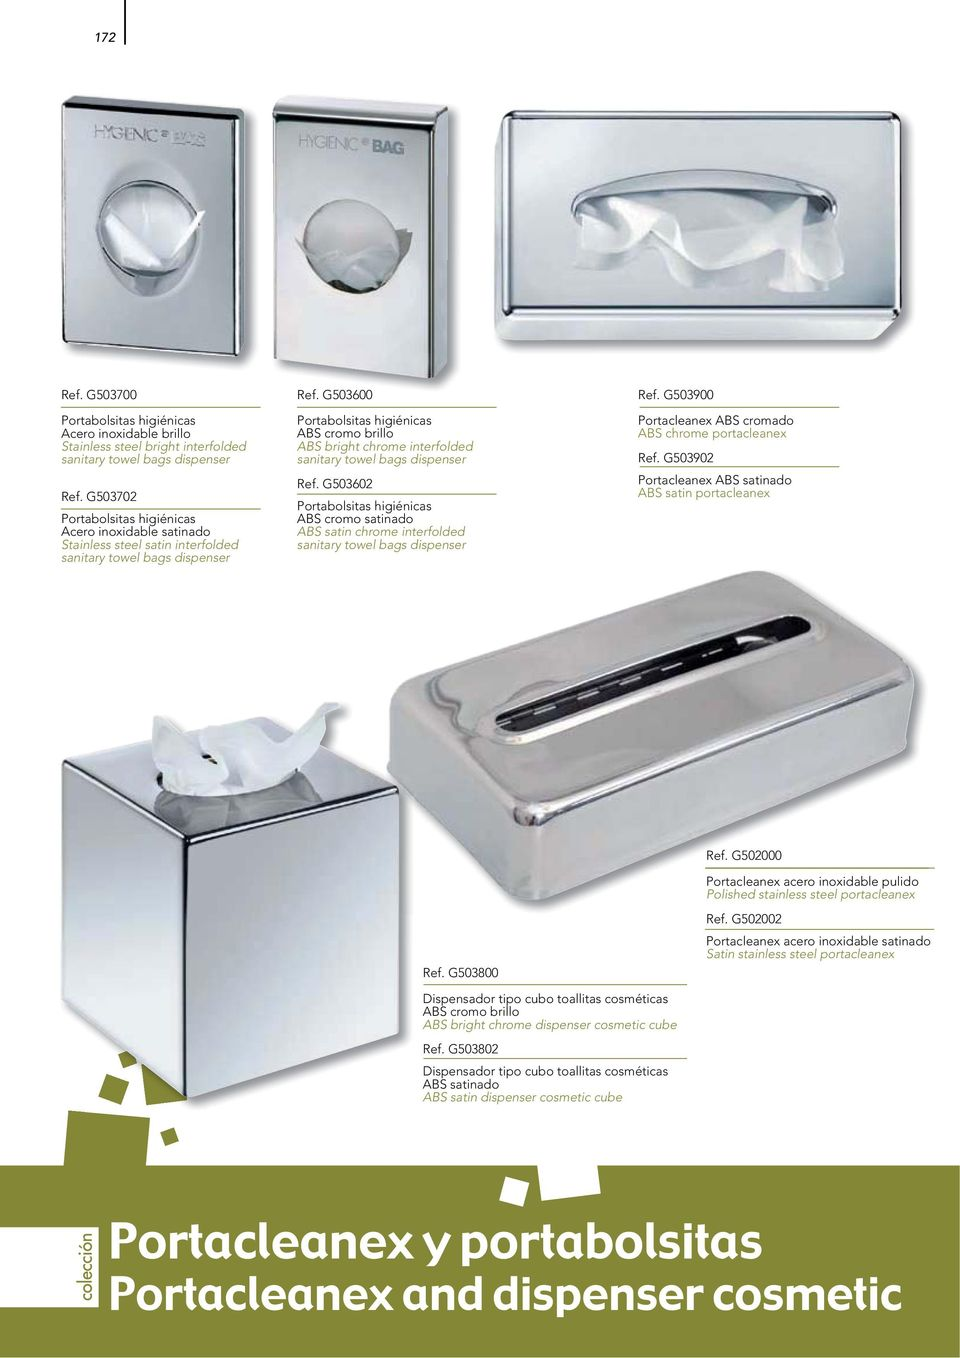 G503600 Portabolsitas higiénicas ABS cromo brillo ABS bright chrome interfolded sanitary towel bags dispenser Ref.